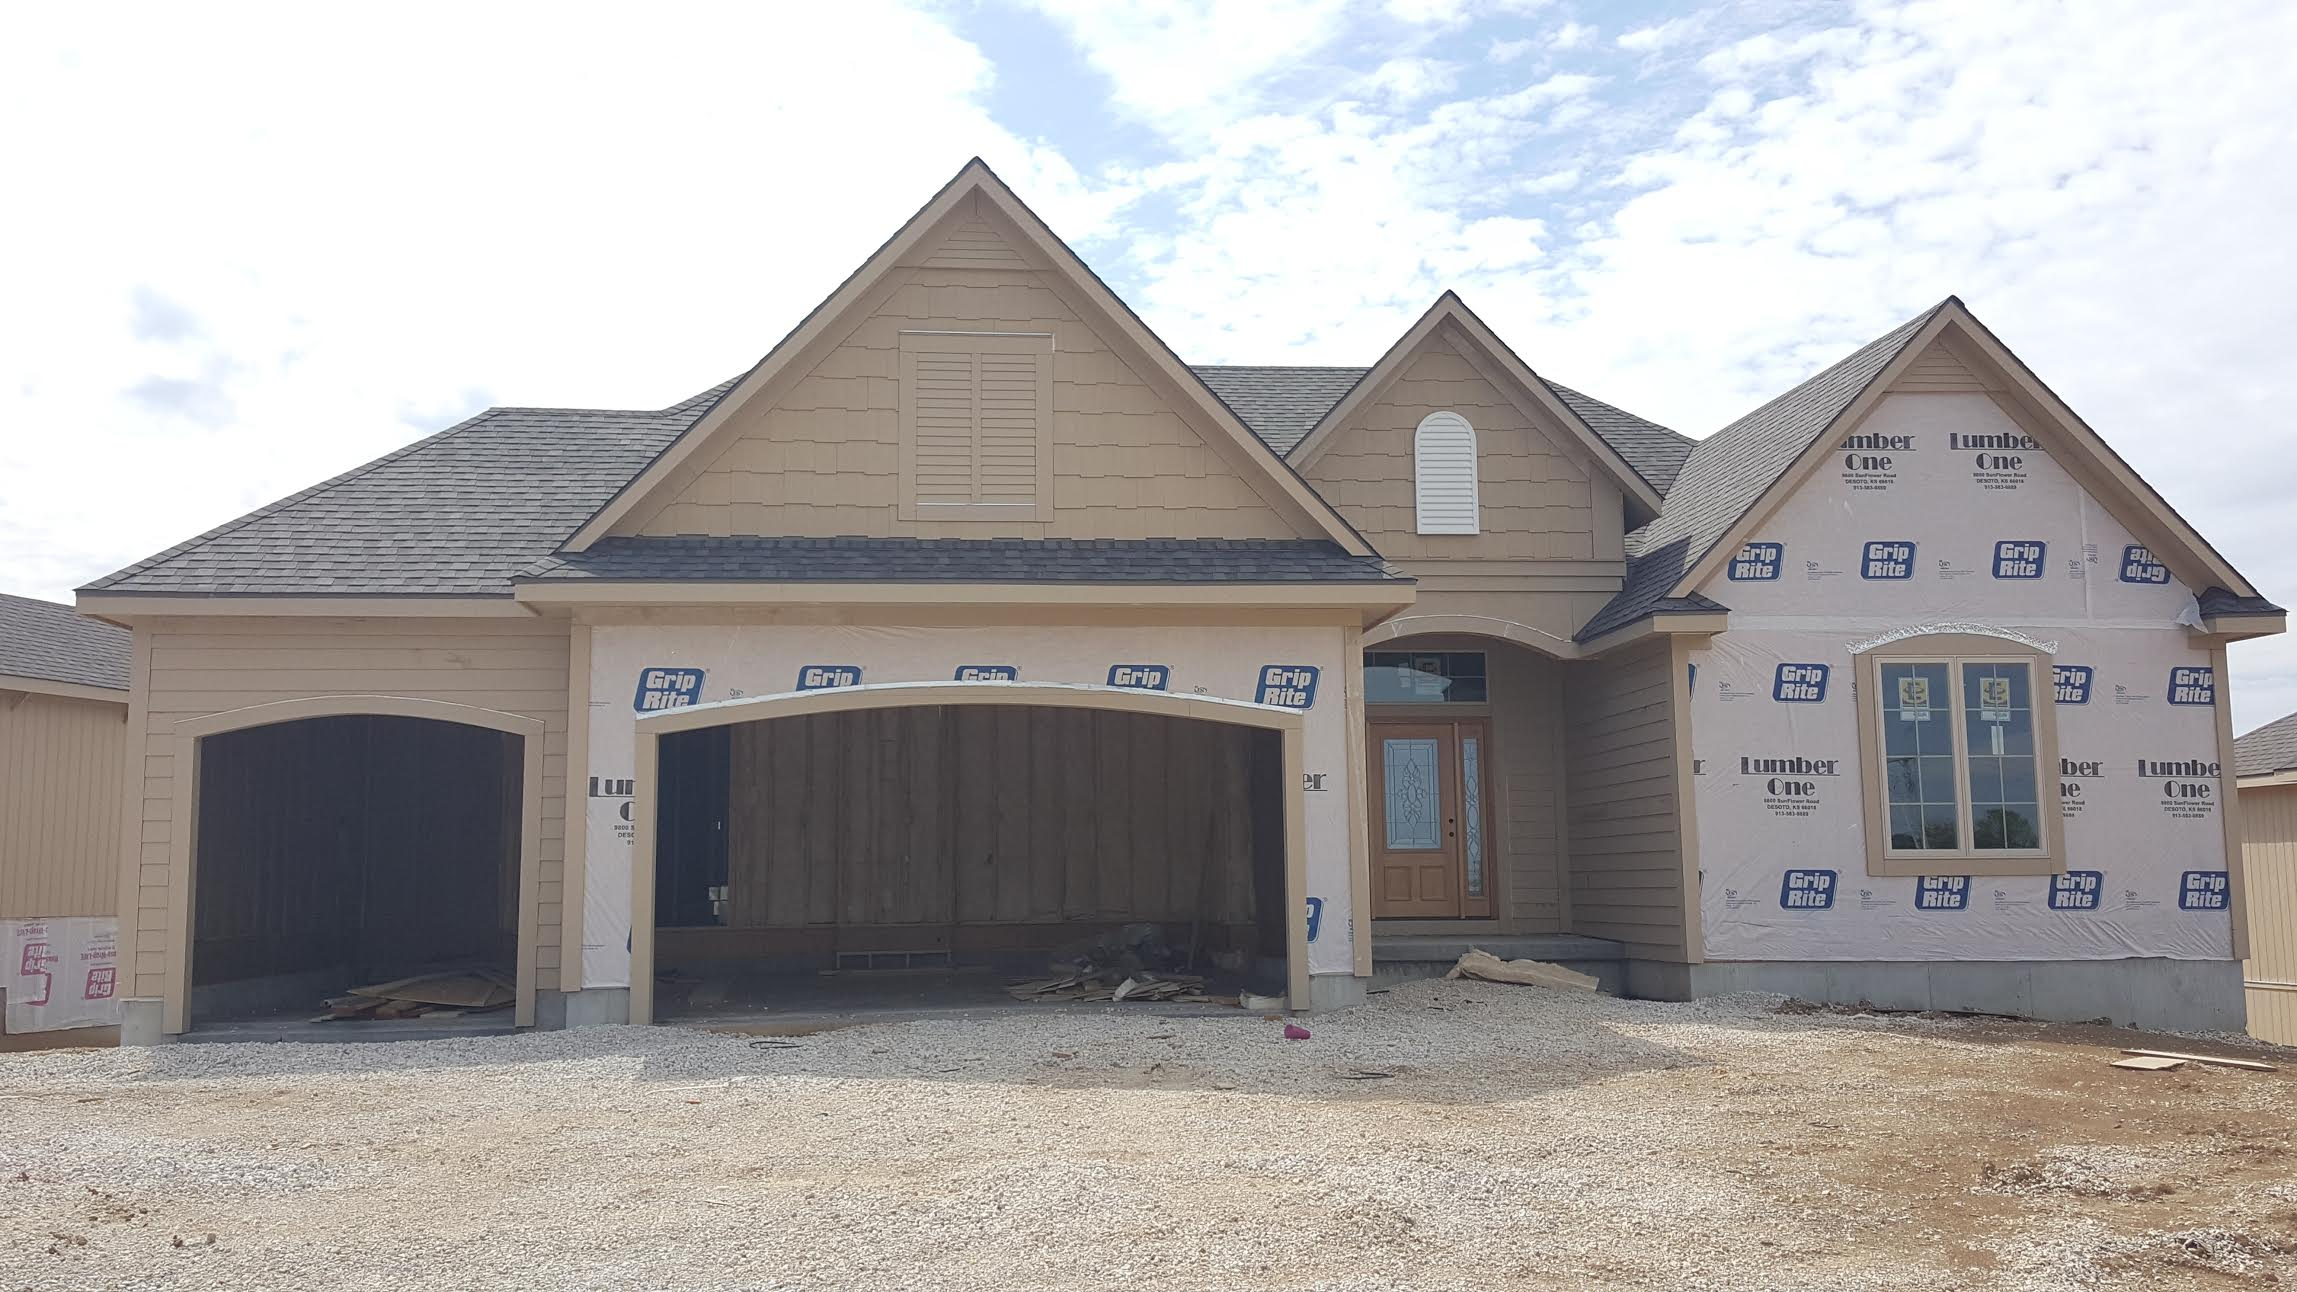 Chapel ridge subdivision parkville mo new construction for First choice custom homes